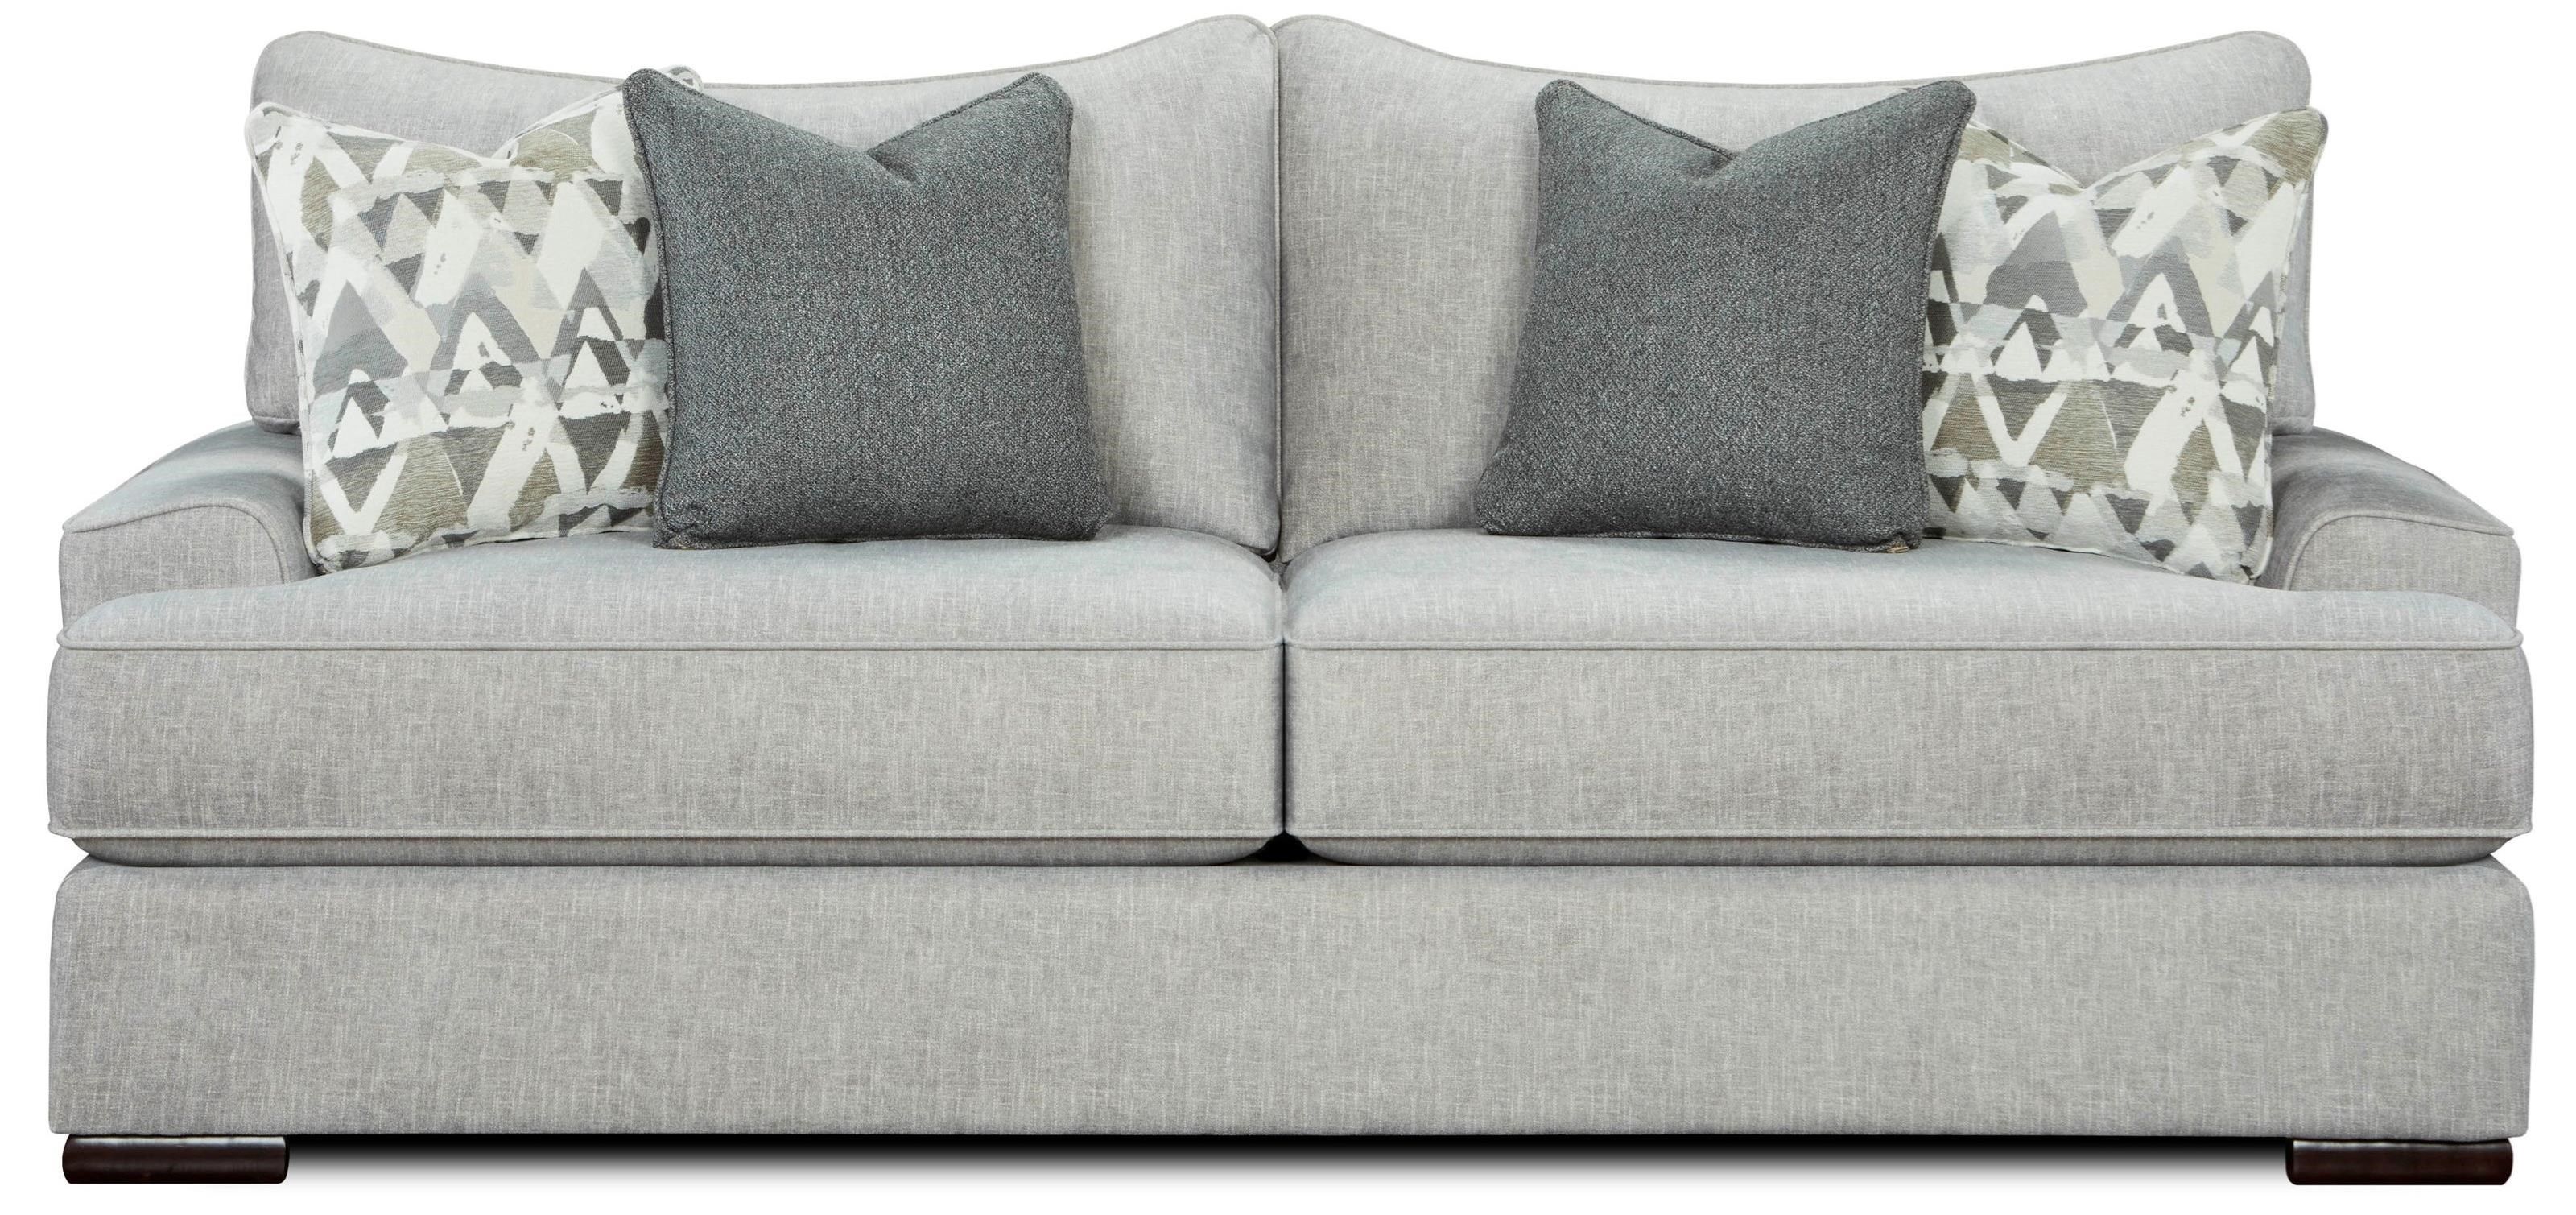 2010 Sofa by Fusion Furniture at Miller Waldrop Furniture and Decor